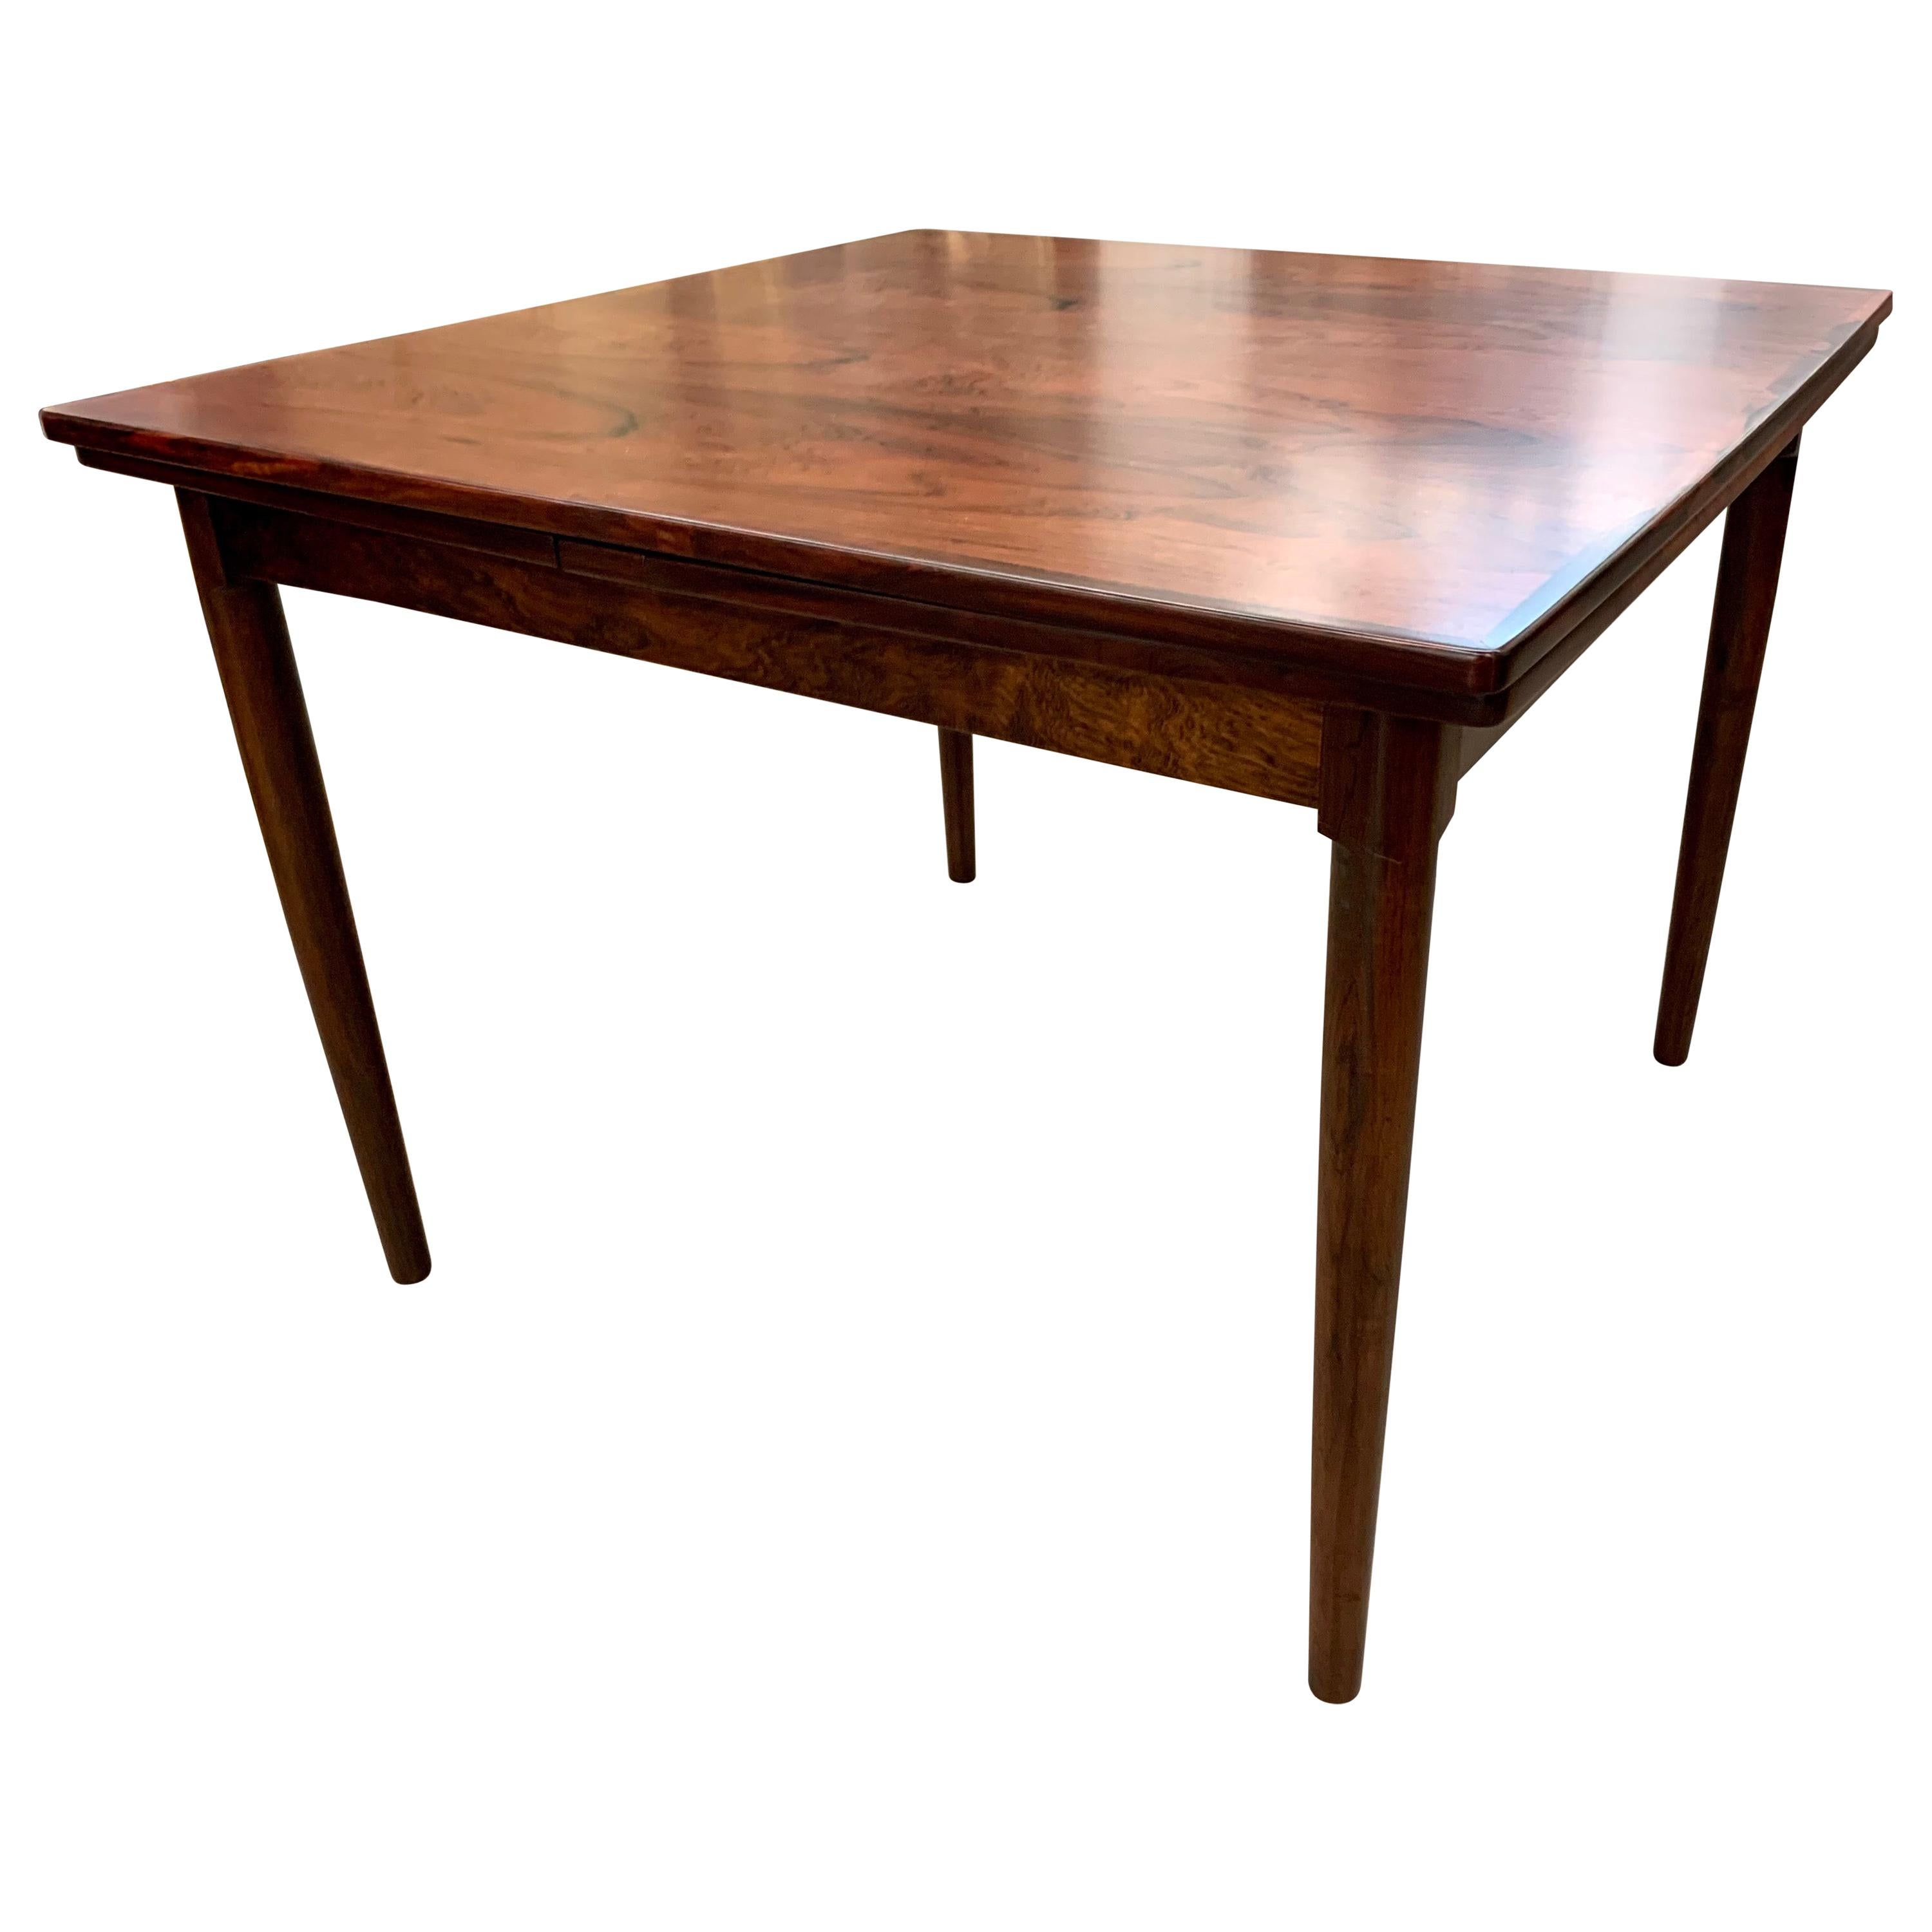 Midcentury Danish Scandinavian Expandable Rosewood Table Doubles in Size